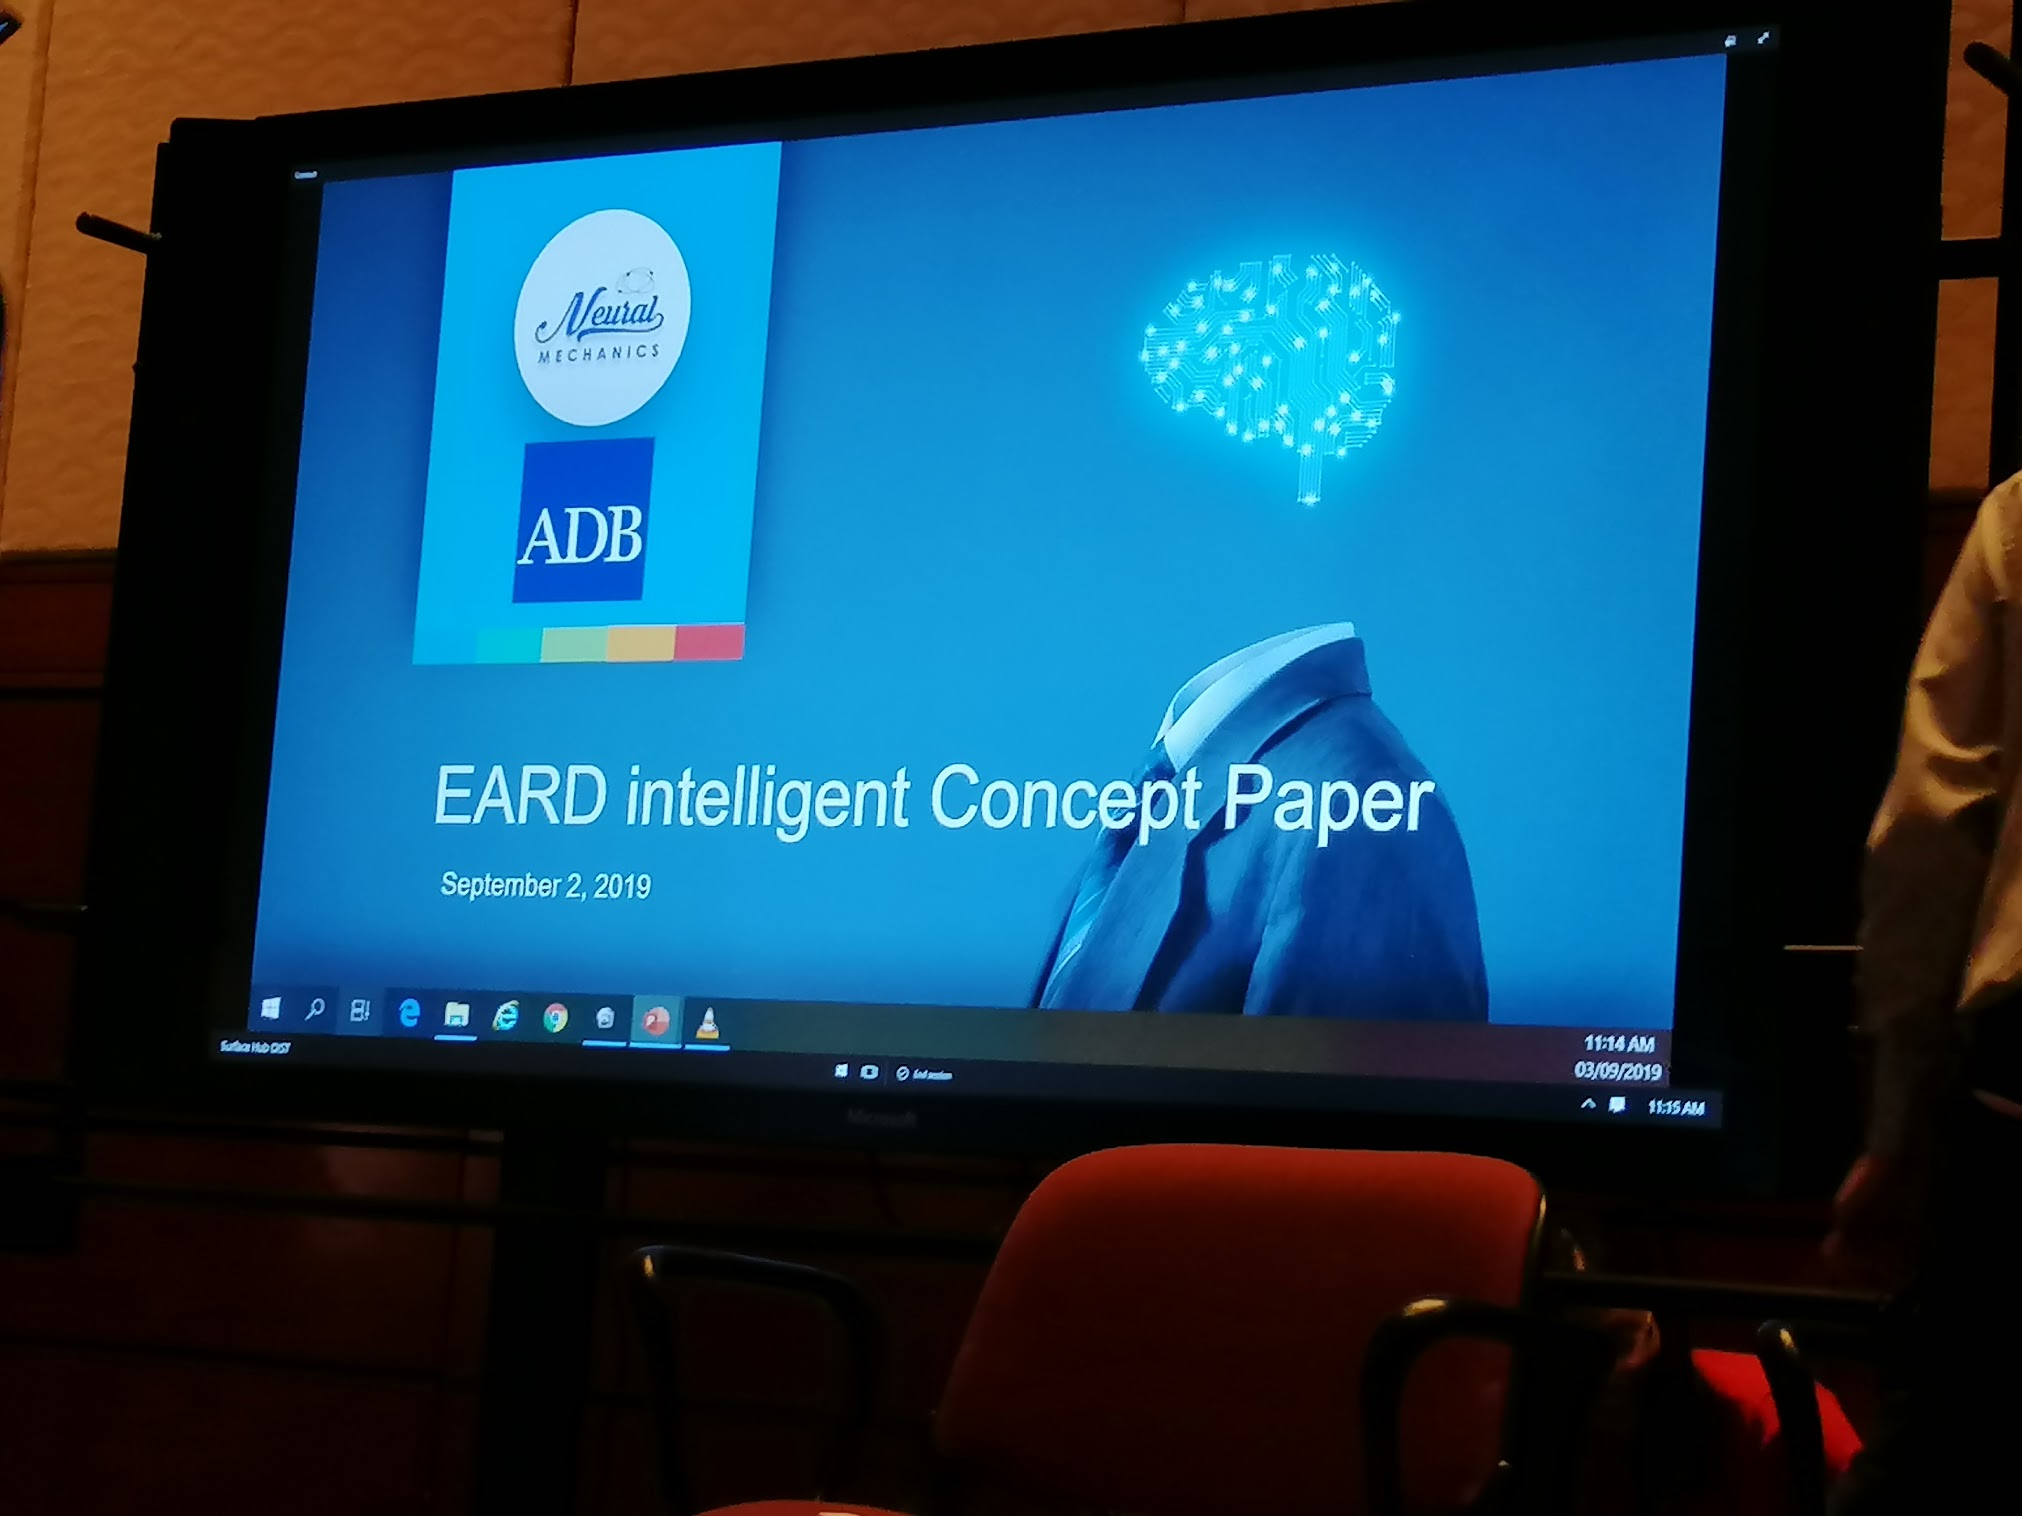 11:15 a.m. - The next session is starting soon! Watch and learn from NMI as they tackle Artificial Intelligence for Operations, particularly the Sandbox Project for Operations - EARD.